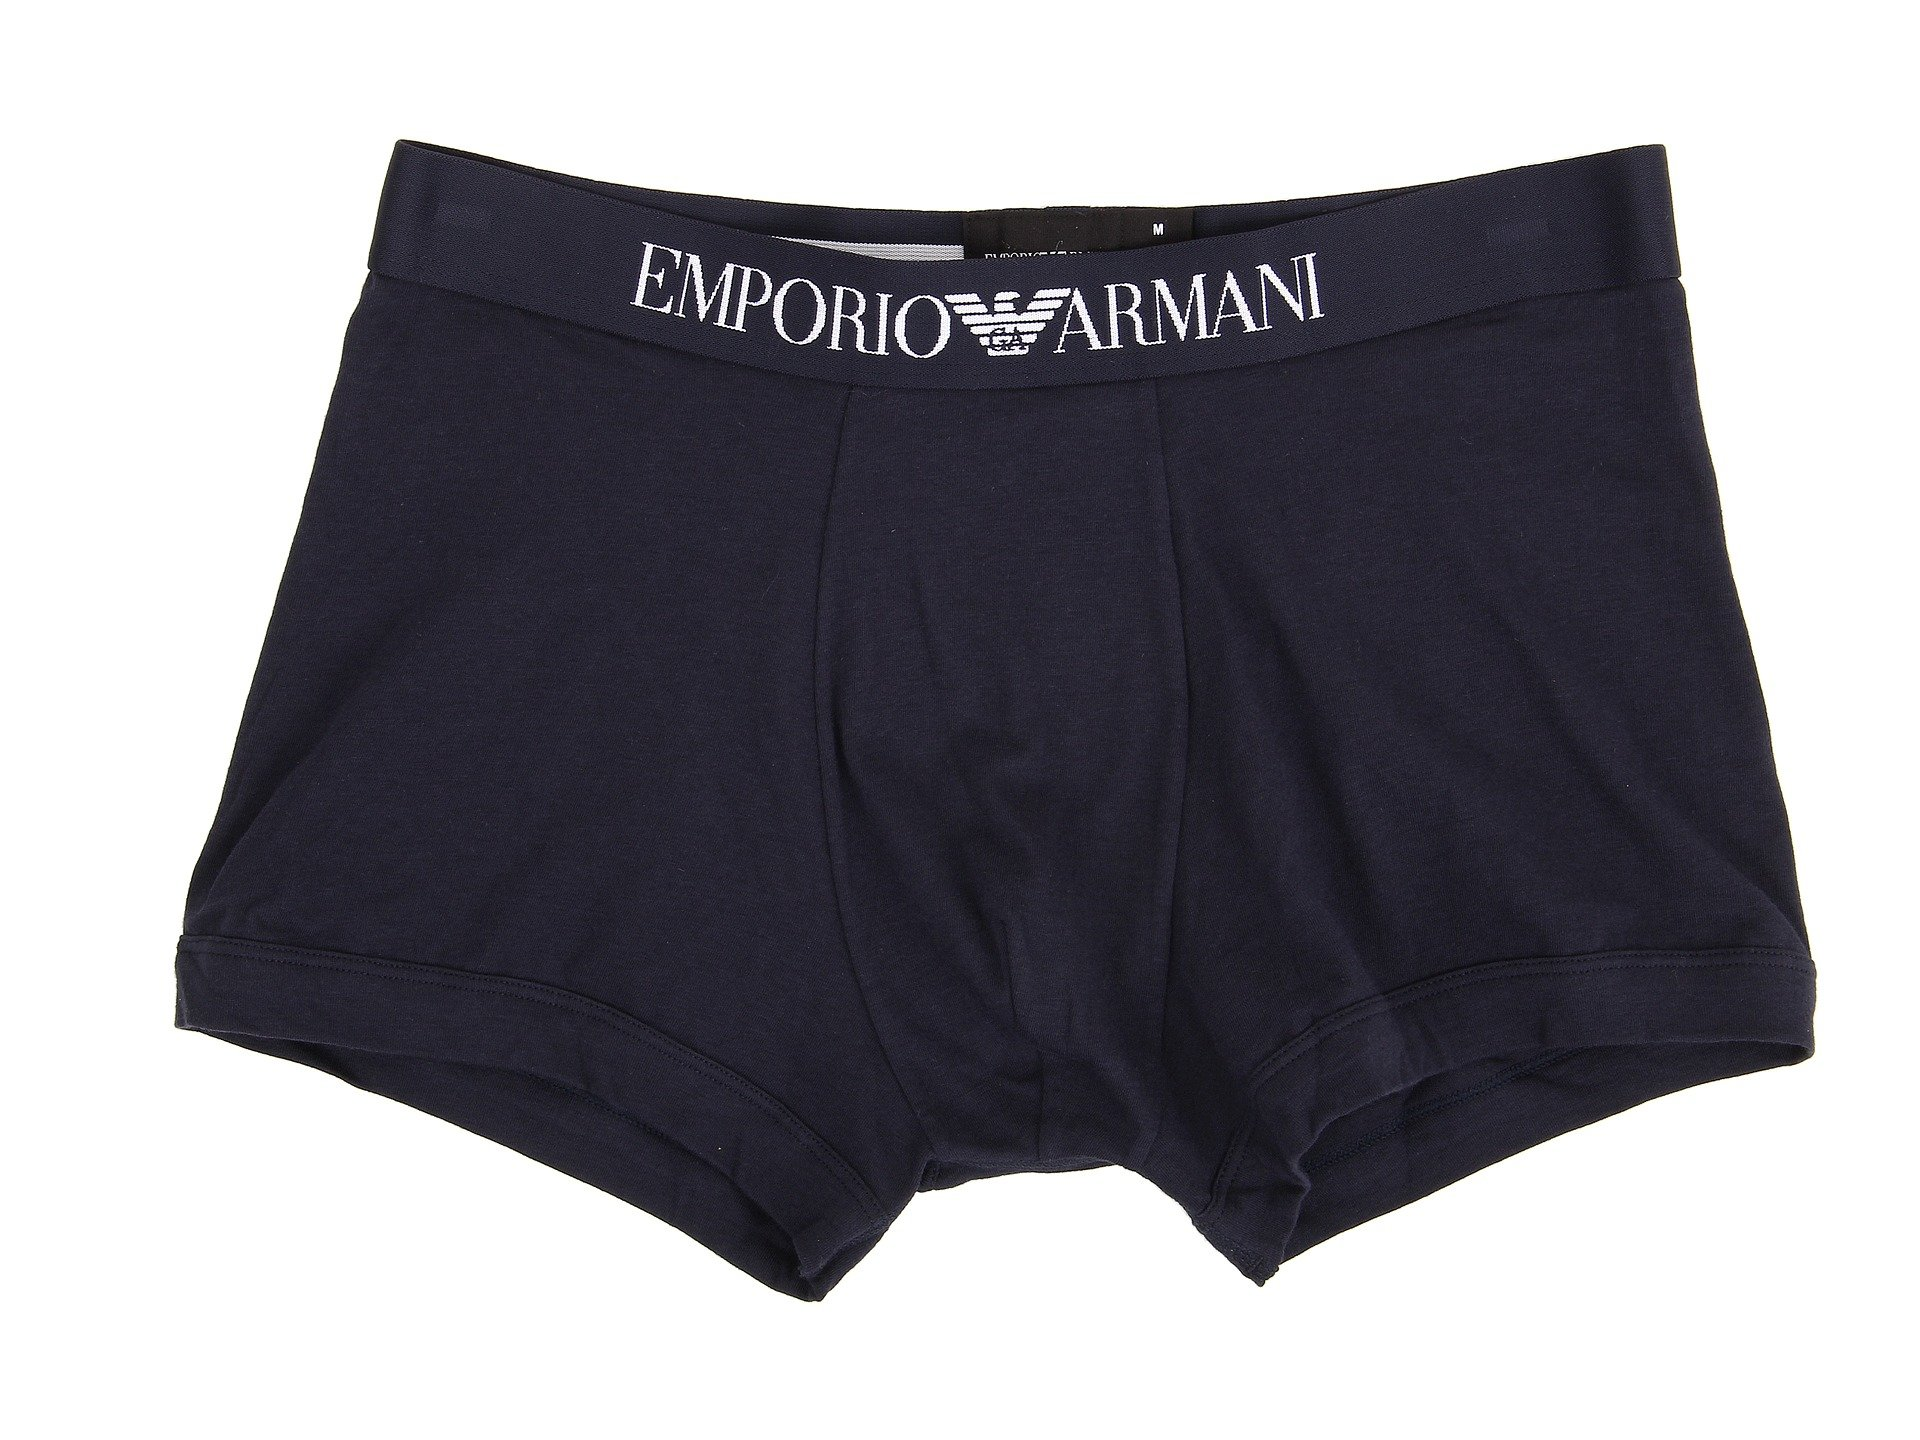 Brief Emporio Cotton Armani Boxer Stretch Navy 66qa7IT